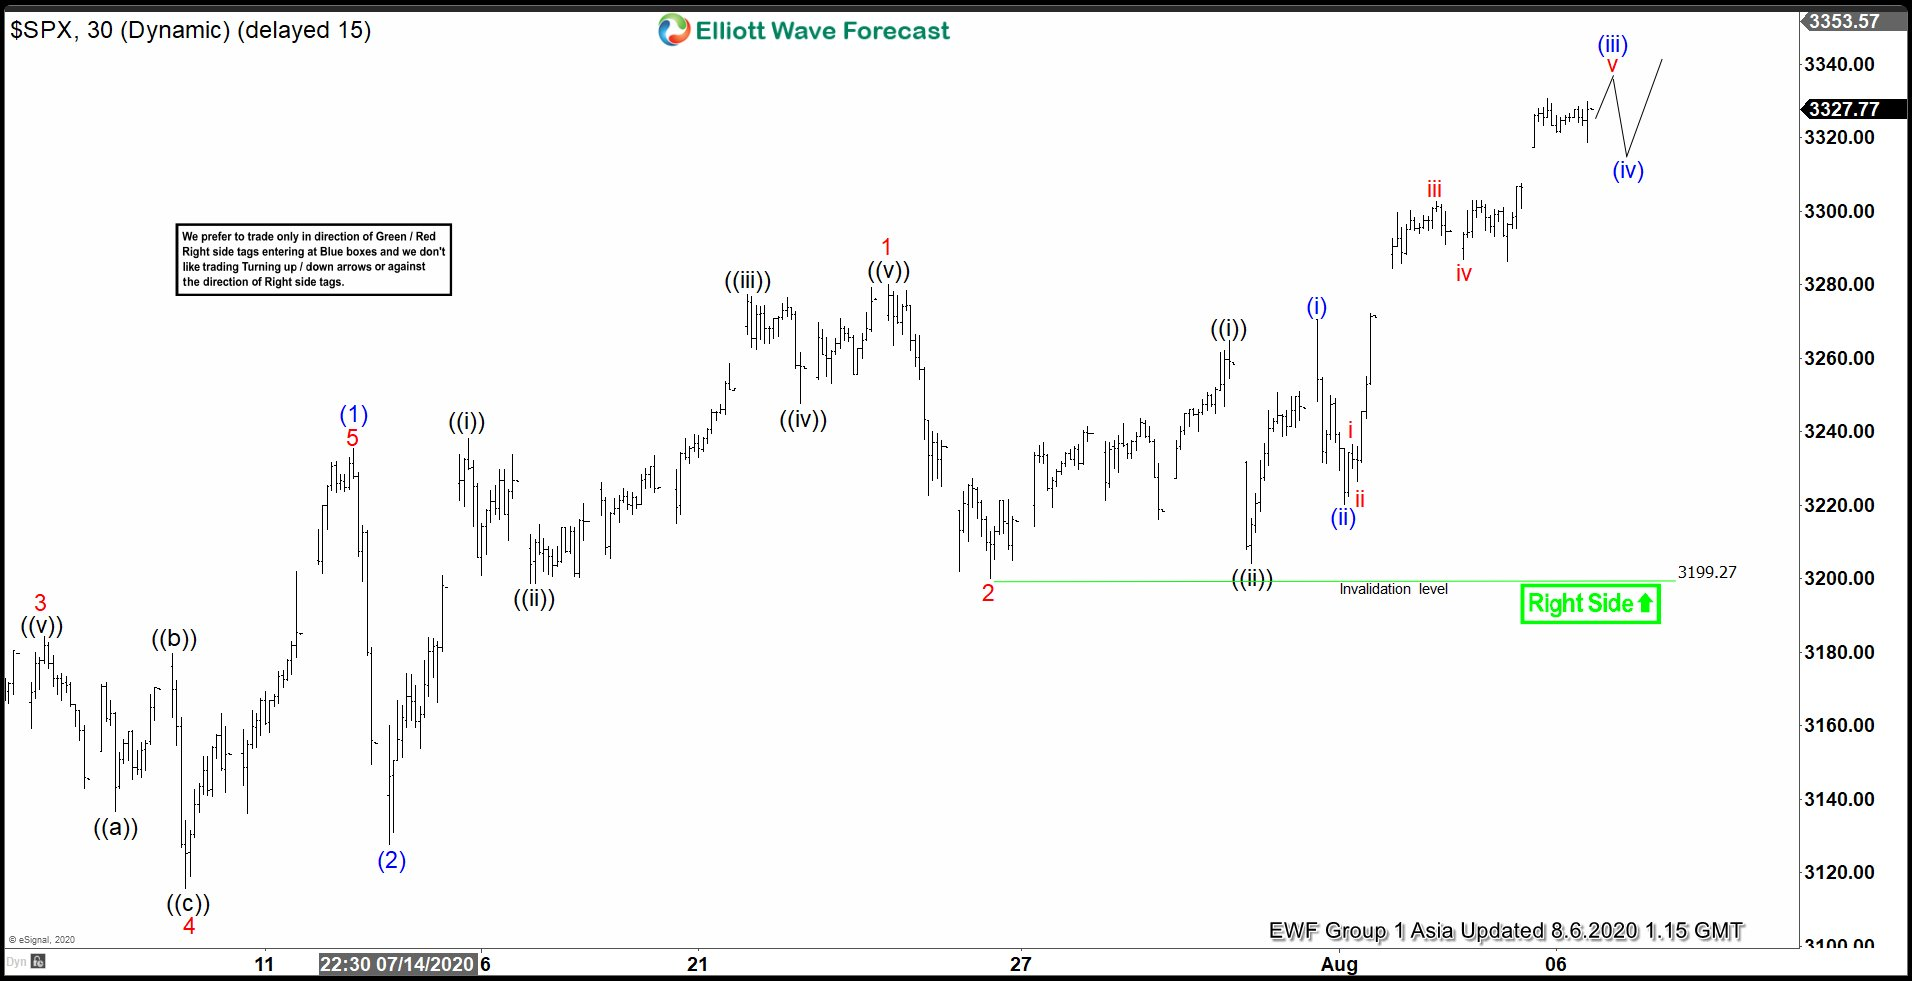 Elliott Wave View: S&P 500 ($SPX) Bullish Cycle Remains Intact